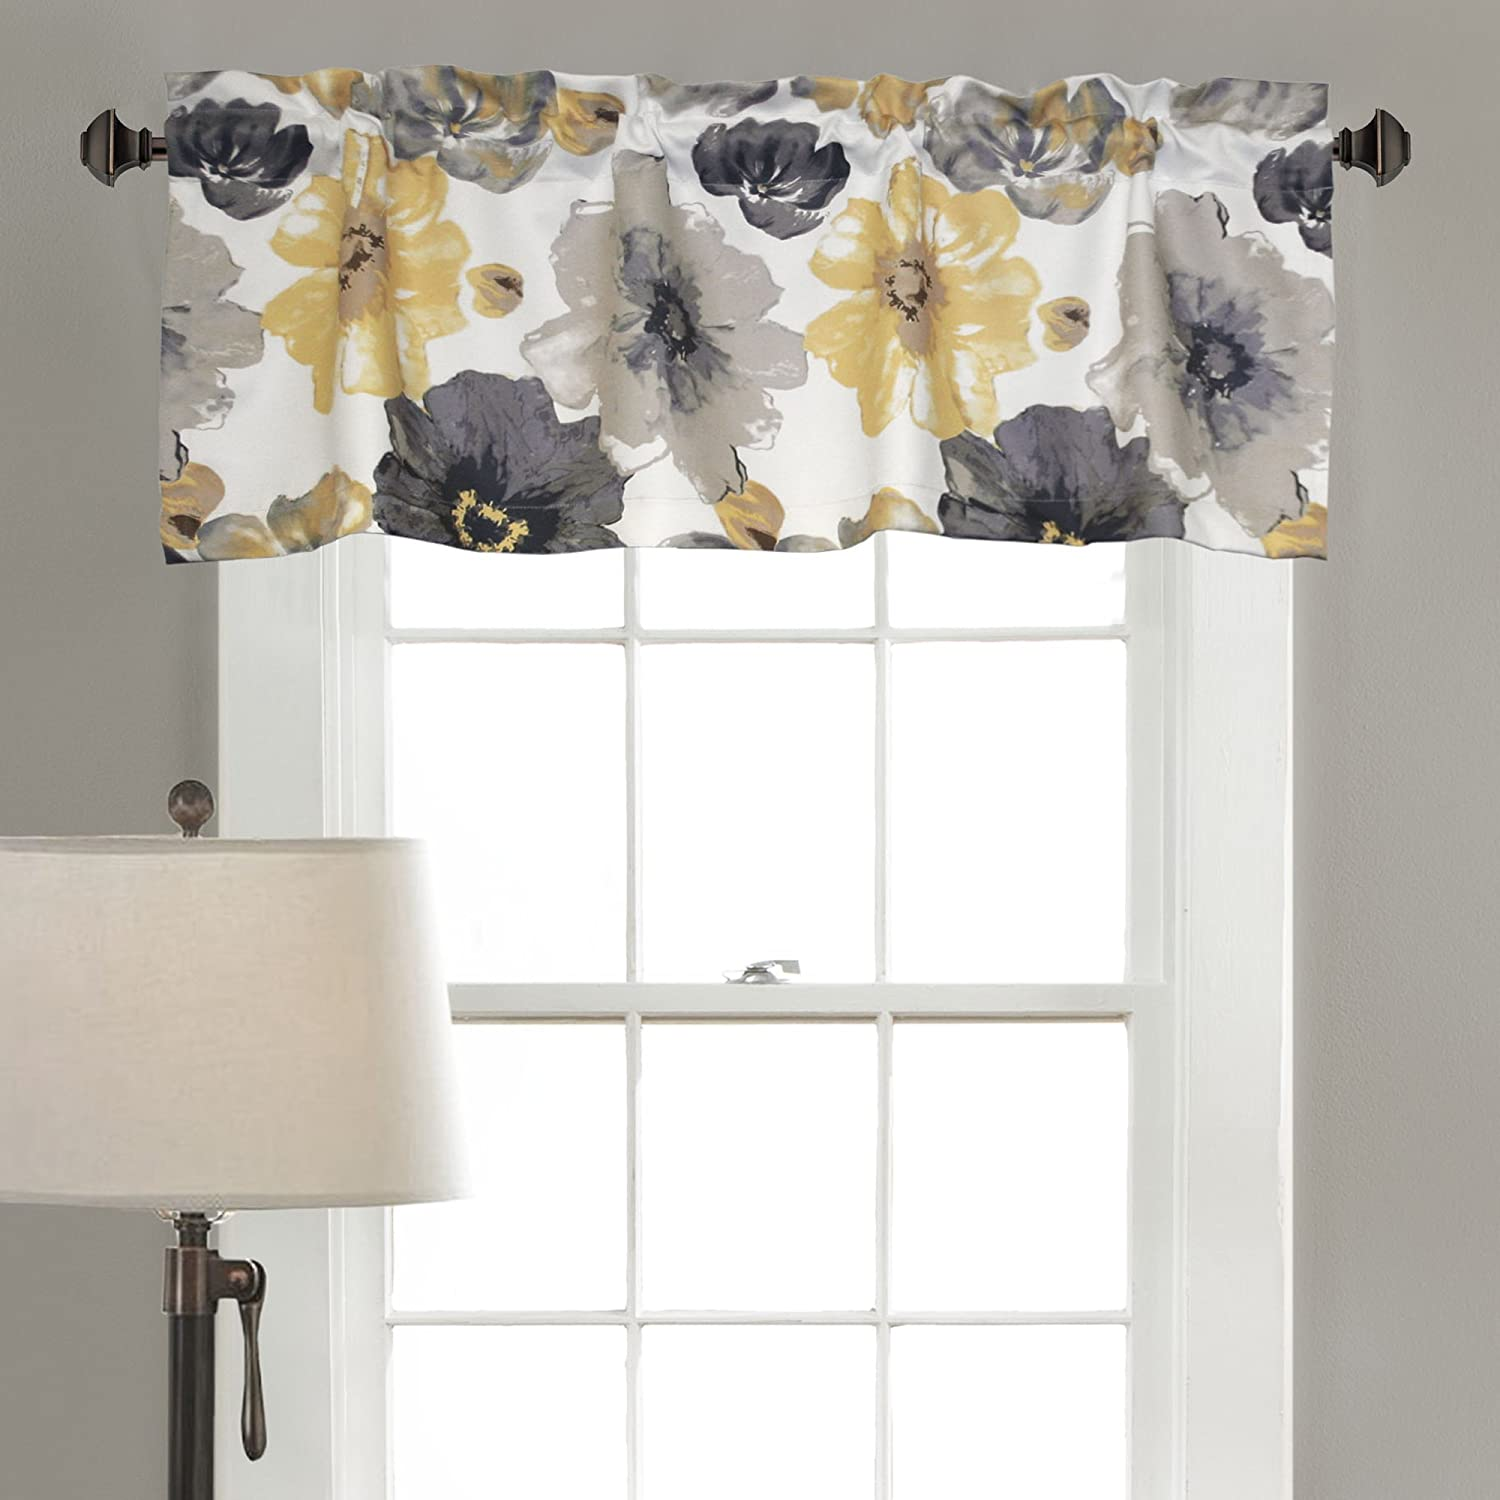 Lush Decor Leah Room Darkening Window Curtain Valance, 18 inch x 52 inch, Yellow/Gray